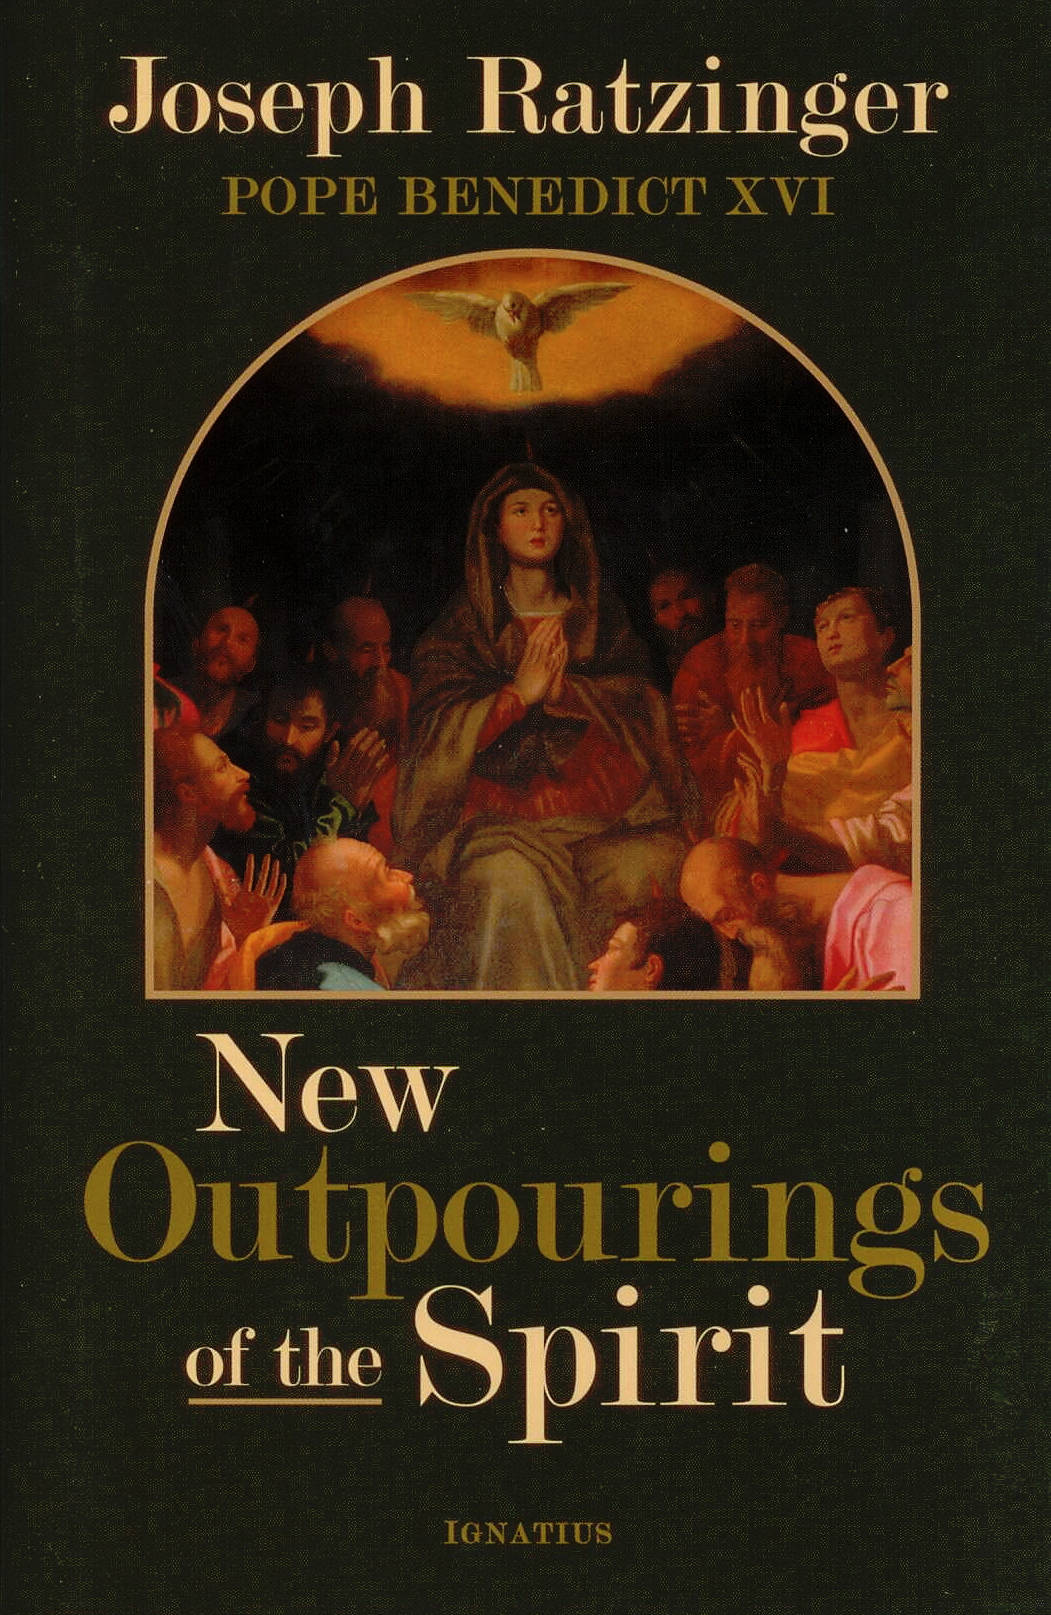 New Outpourings of the Spirit by Joseph Ratzinger #9781586161810